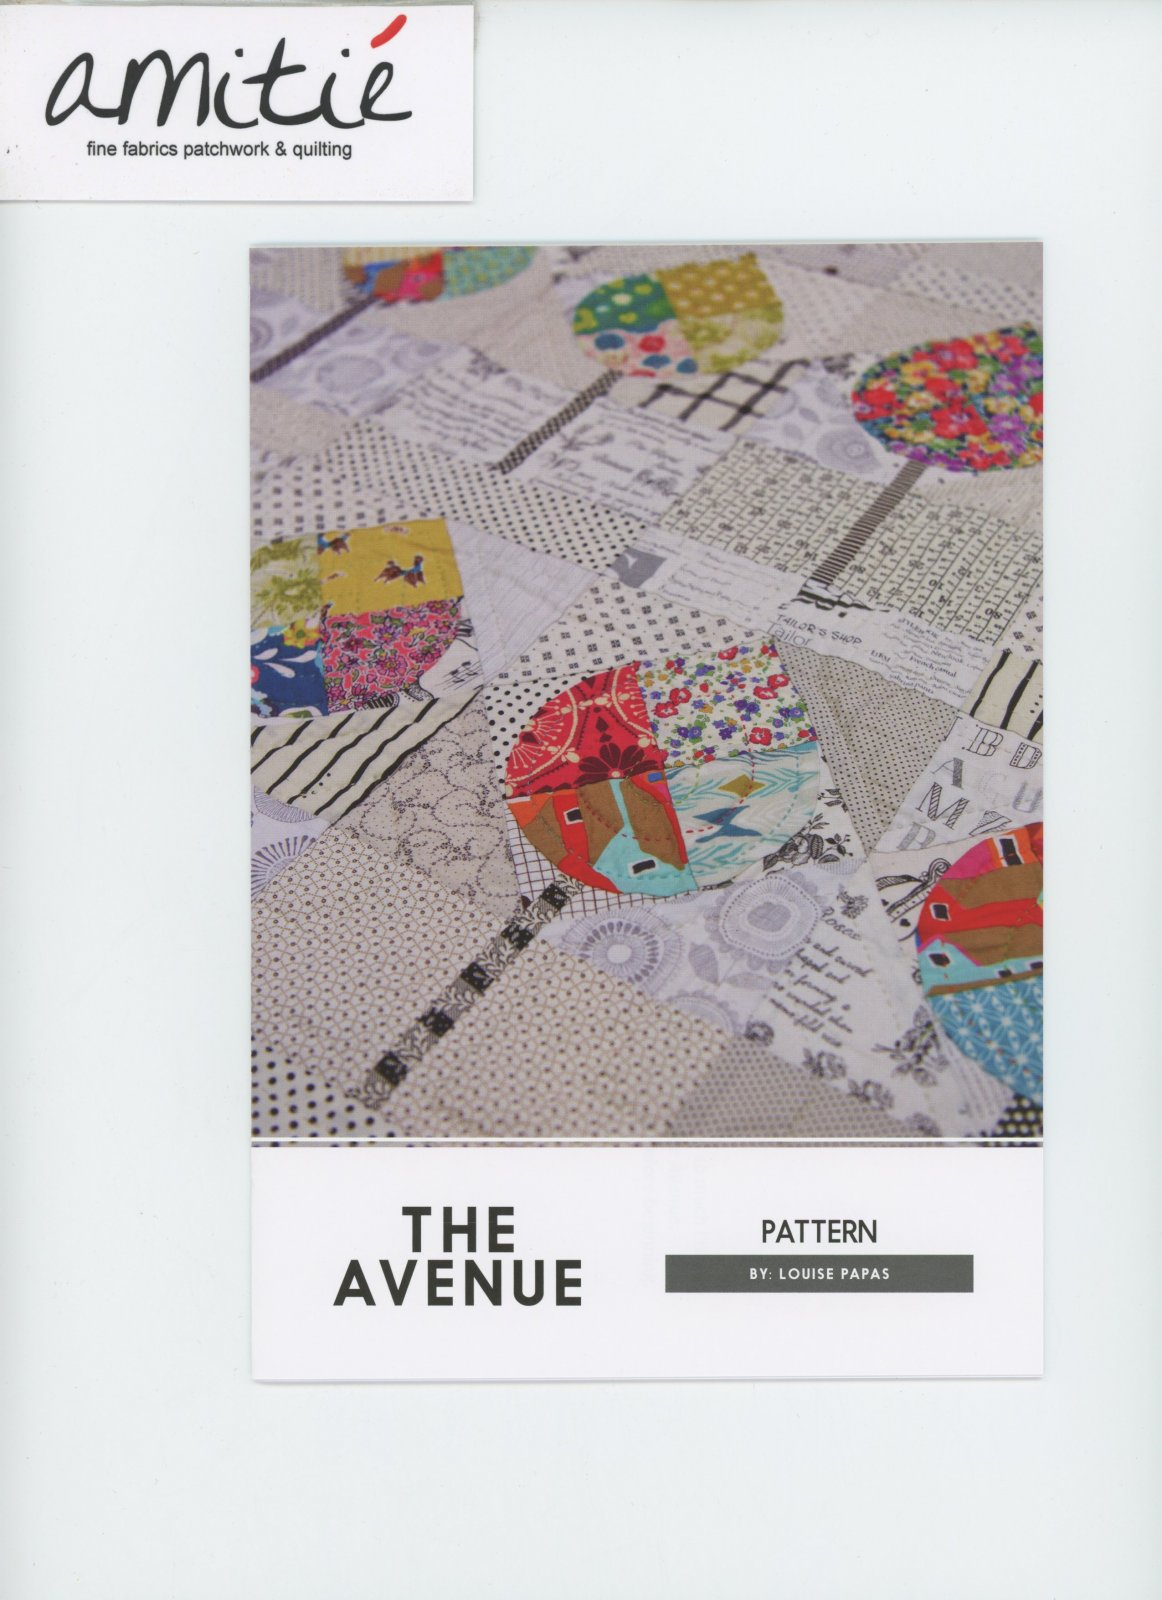 The Avenue Pattern by Louise Papas